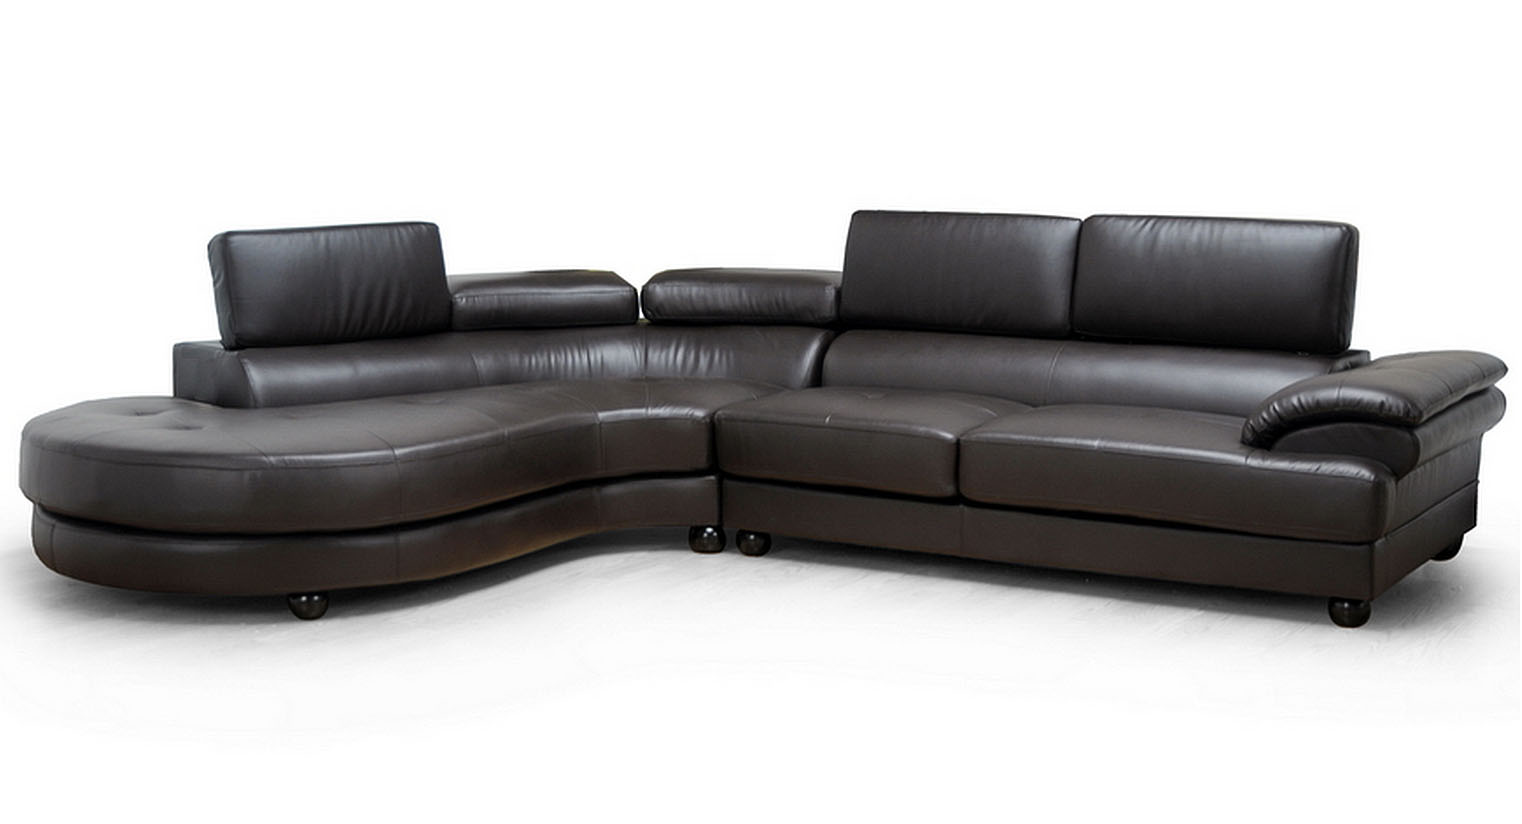 Adelaide dark brown leather sectional sofa with chaise by for Brown leather sectional sofa with chaise